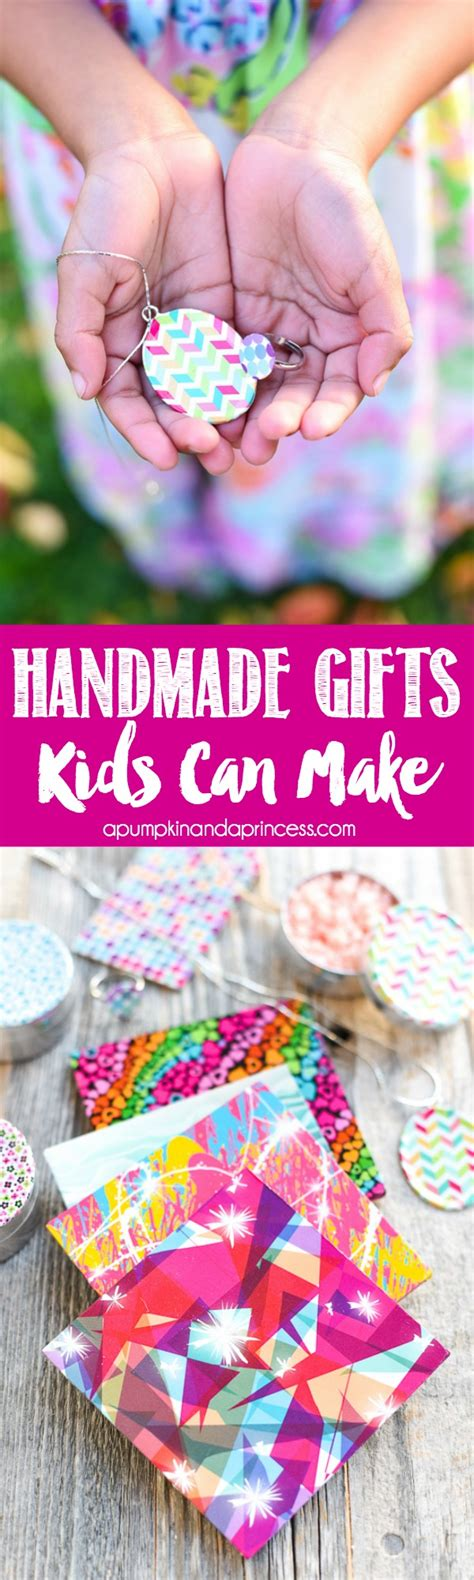 Handmade Gifts Can Make - handmade gifts can make a pumpkin and a princess